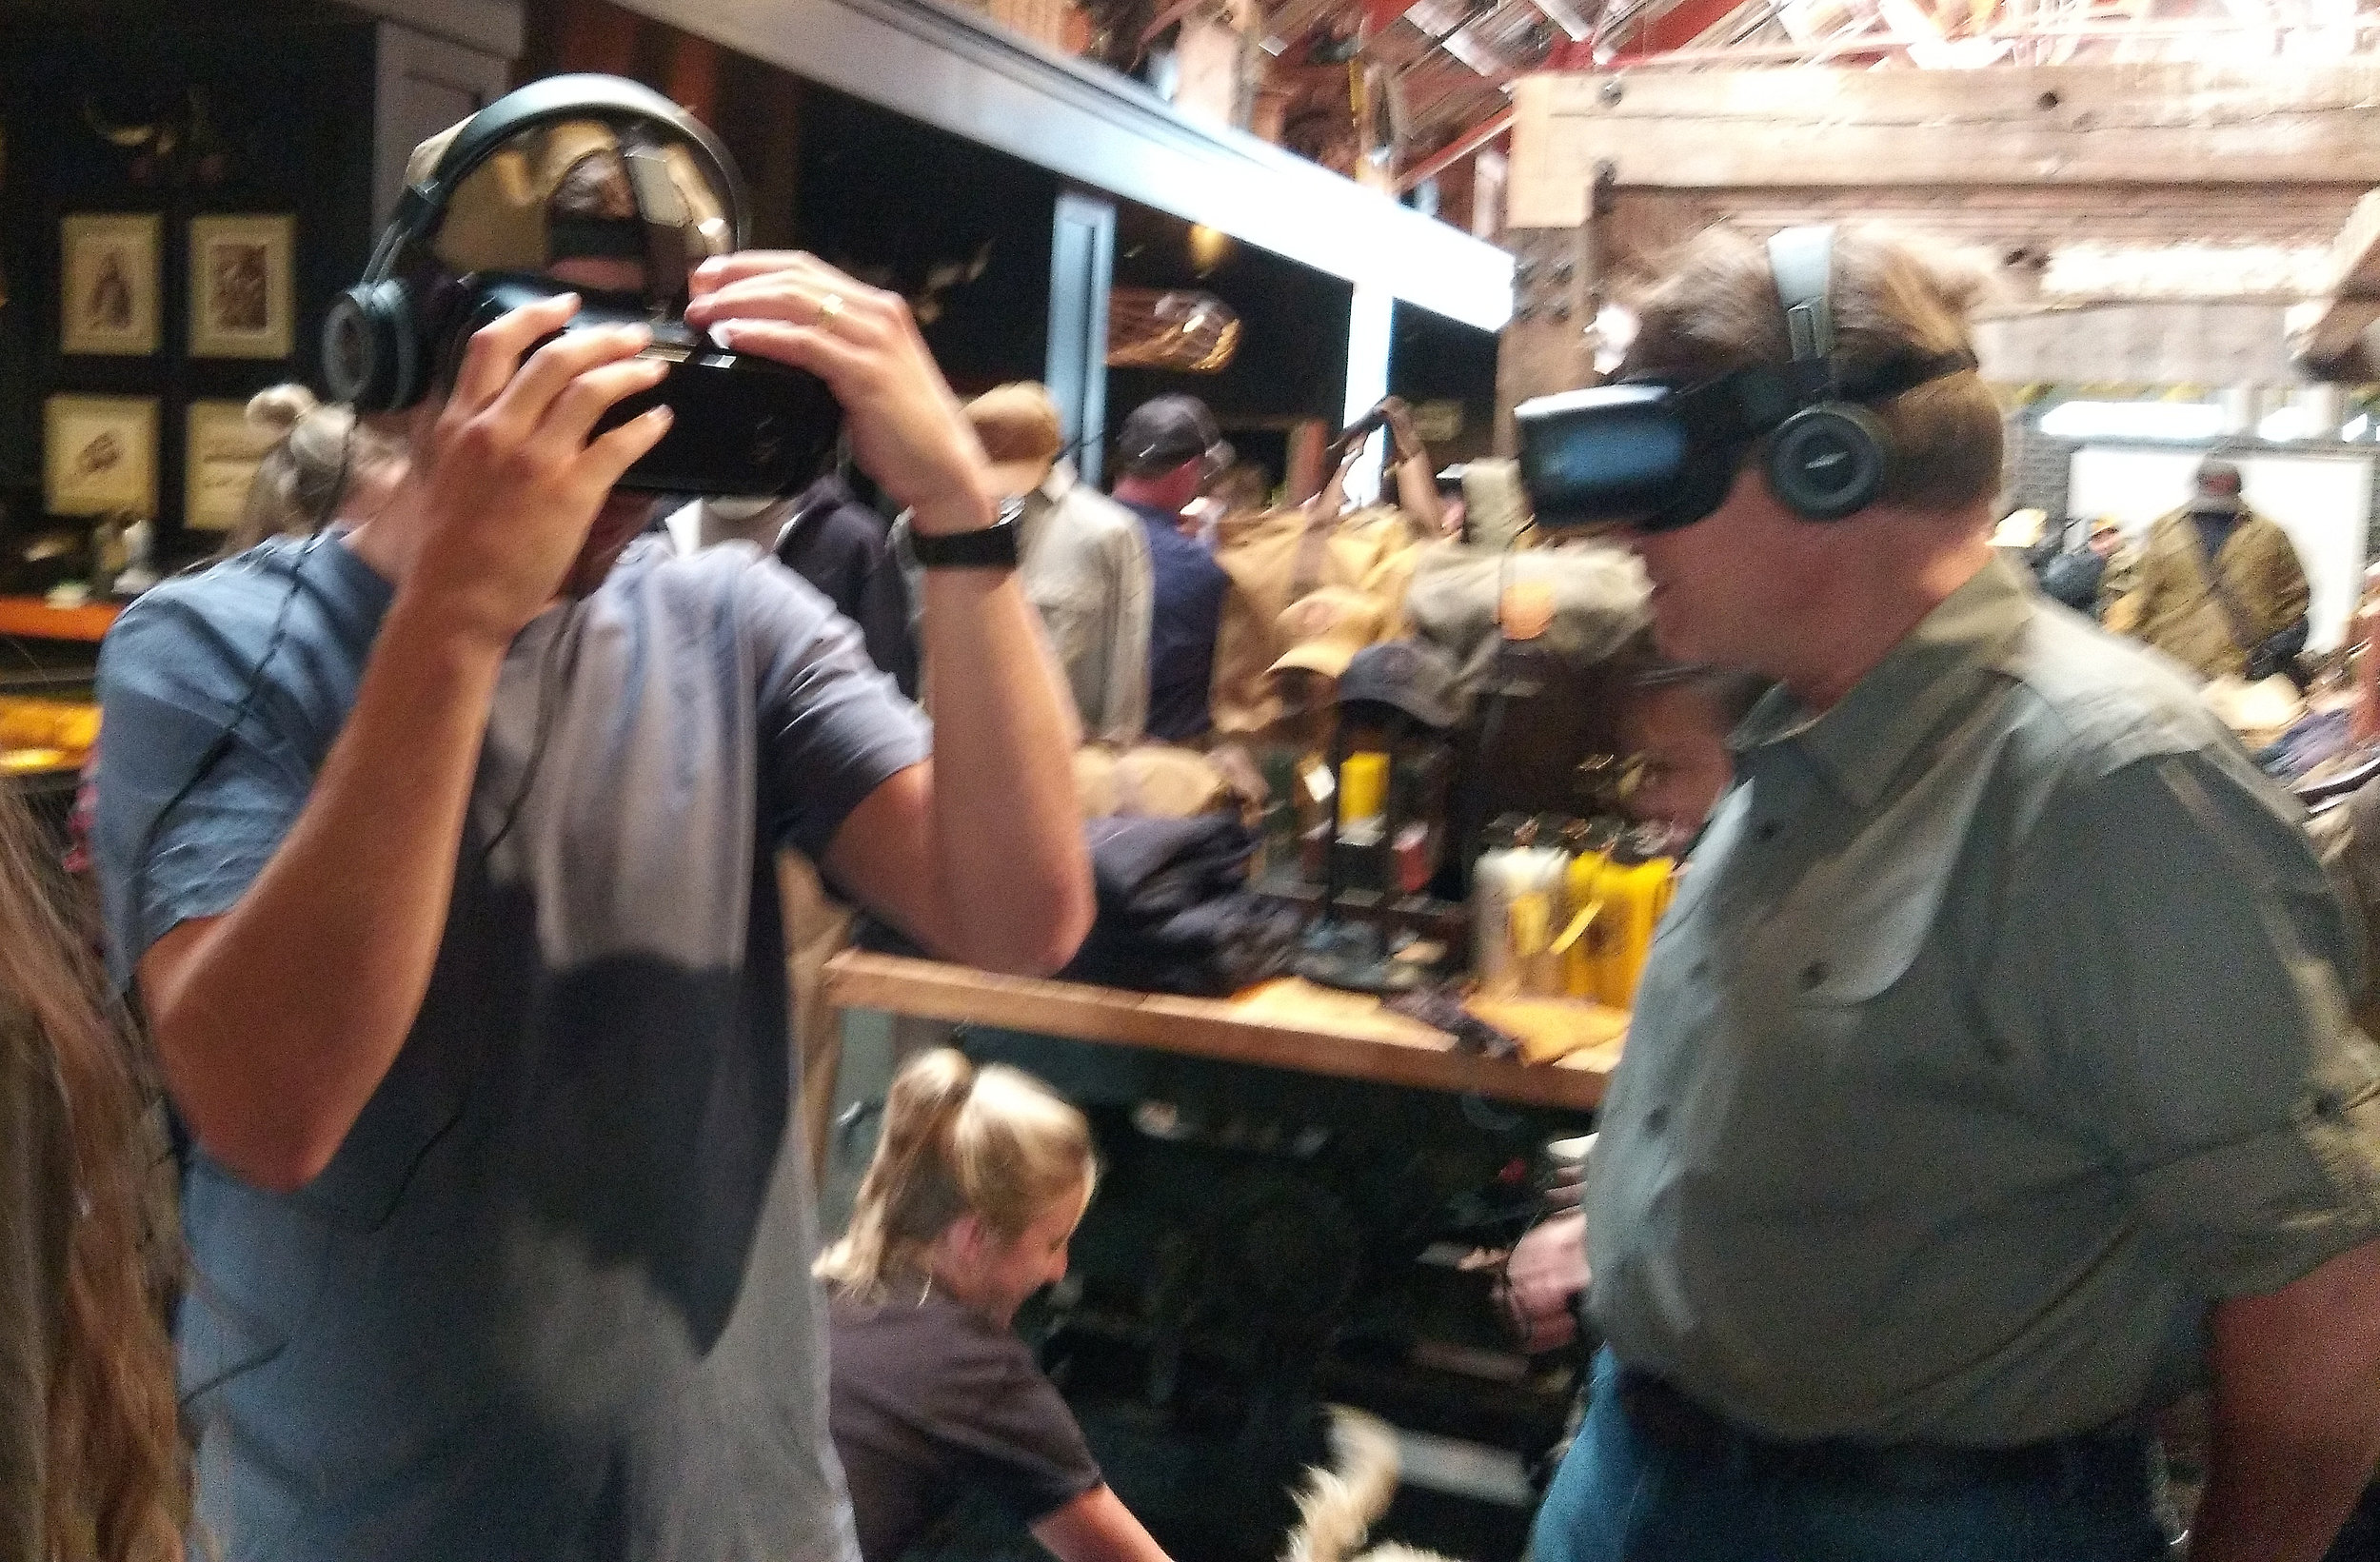 Filson fans enjoying the Gear VR experience